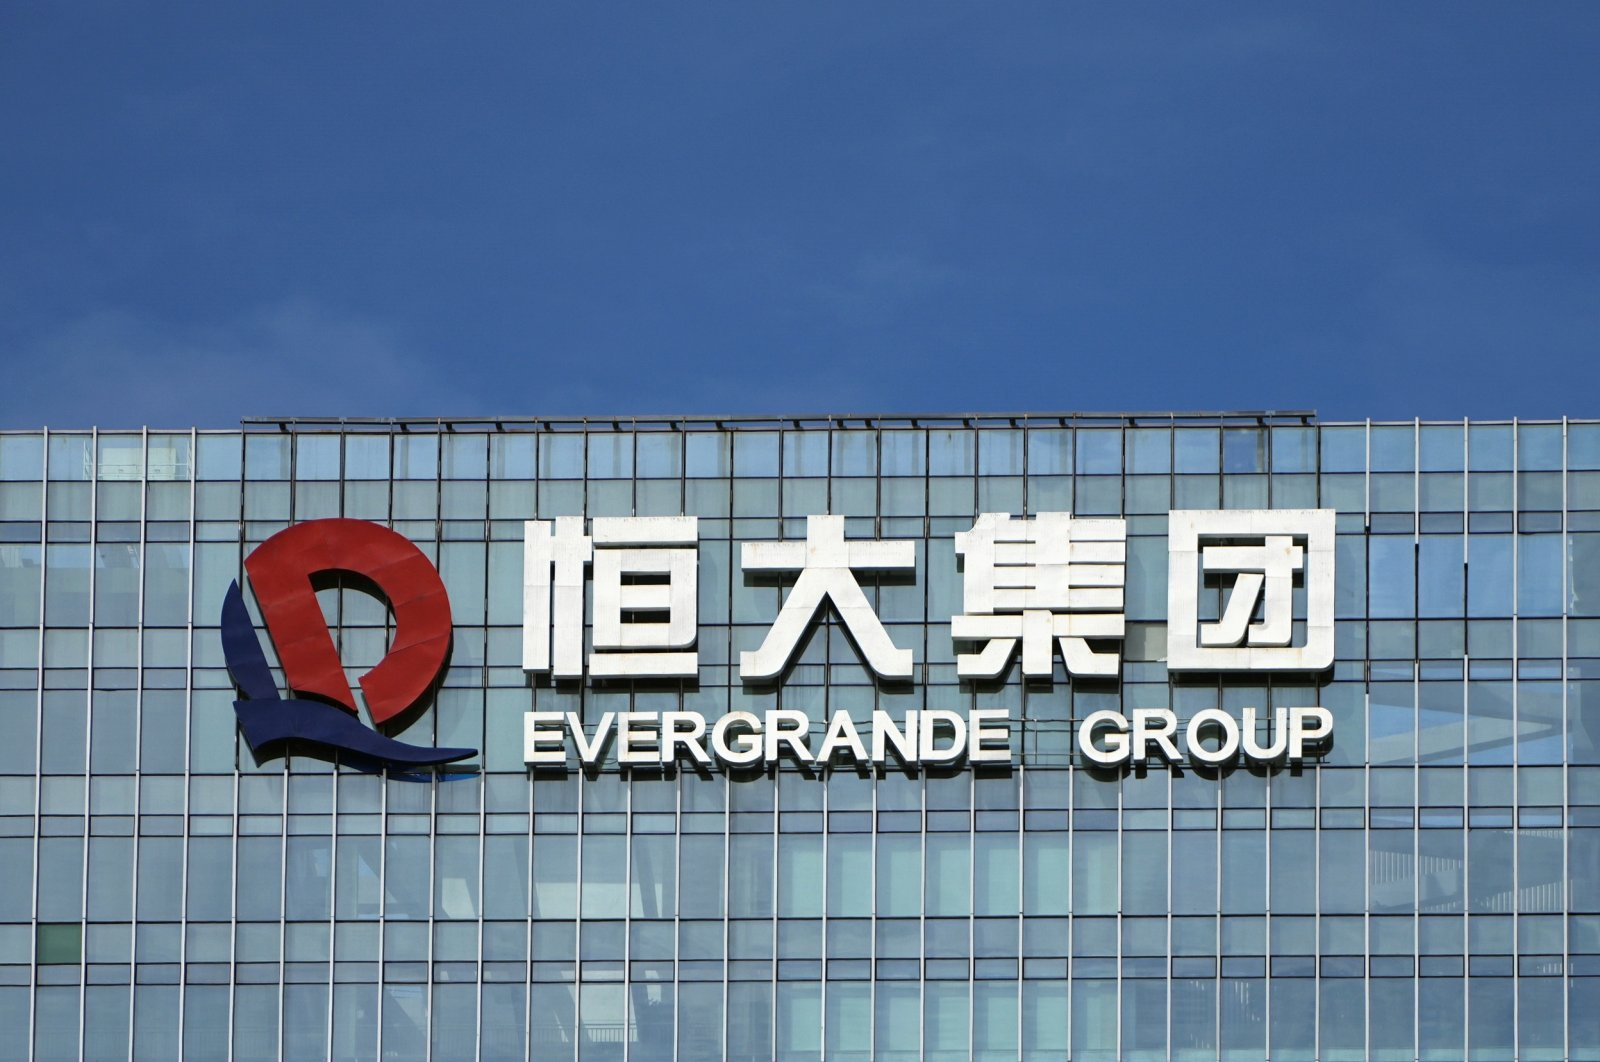 The company logo is seen on the headquarters of China Evergrande Group in Shenzhen, Guangdong province, China, Sept. 26, 2021. (Reuters Photo)